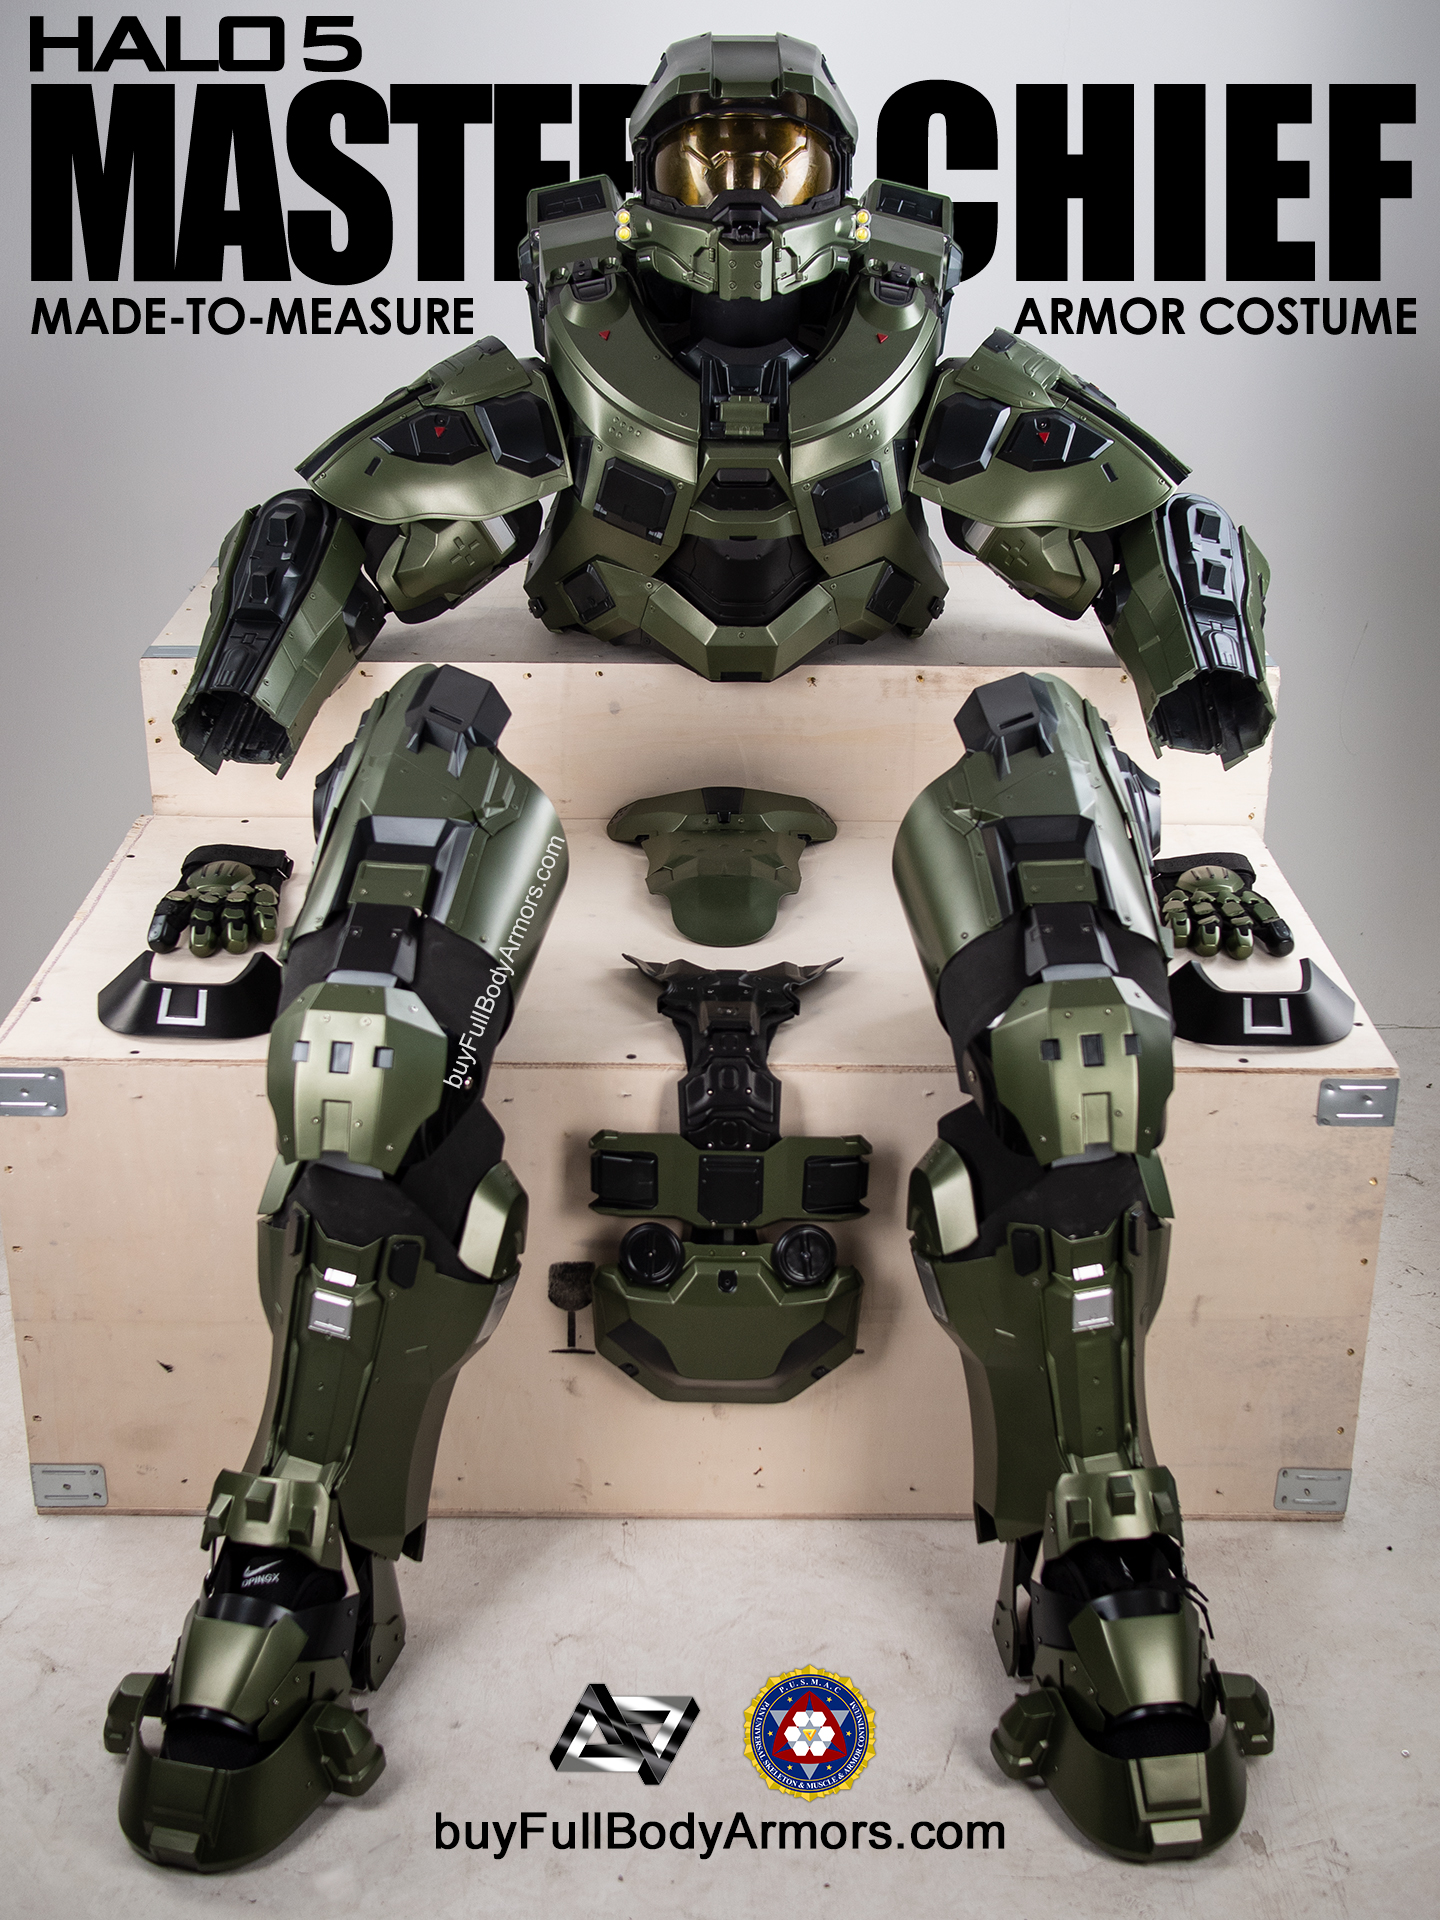 Halo 5 Master Chief Armor Suit Costume all parts